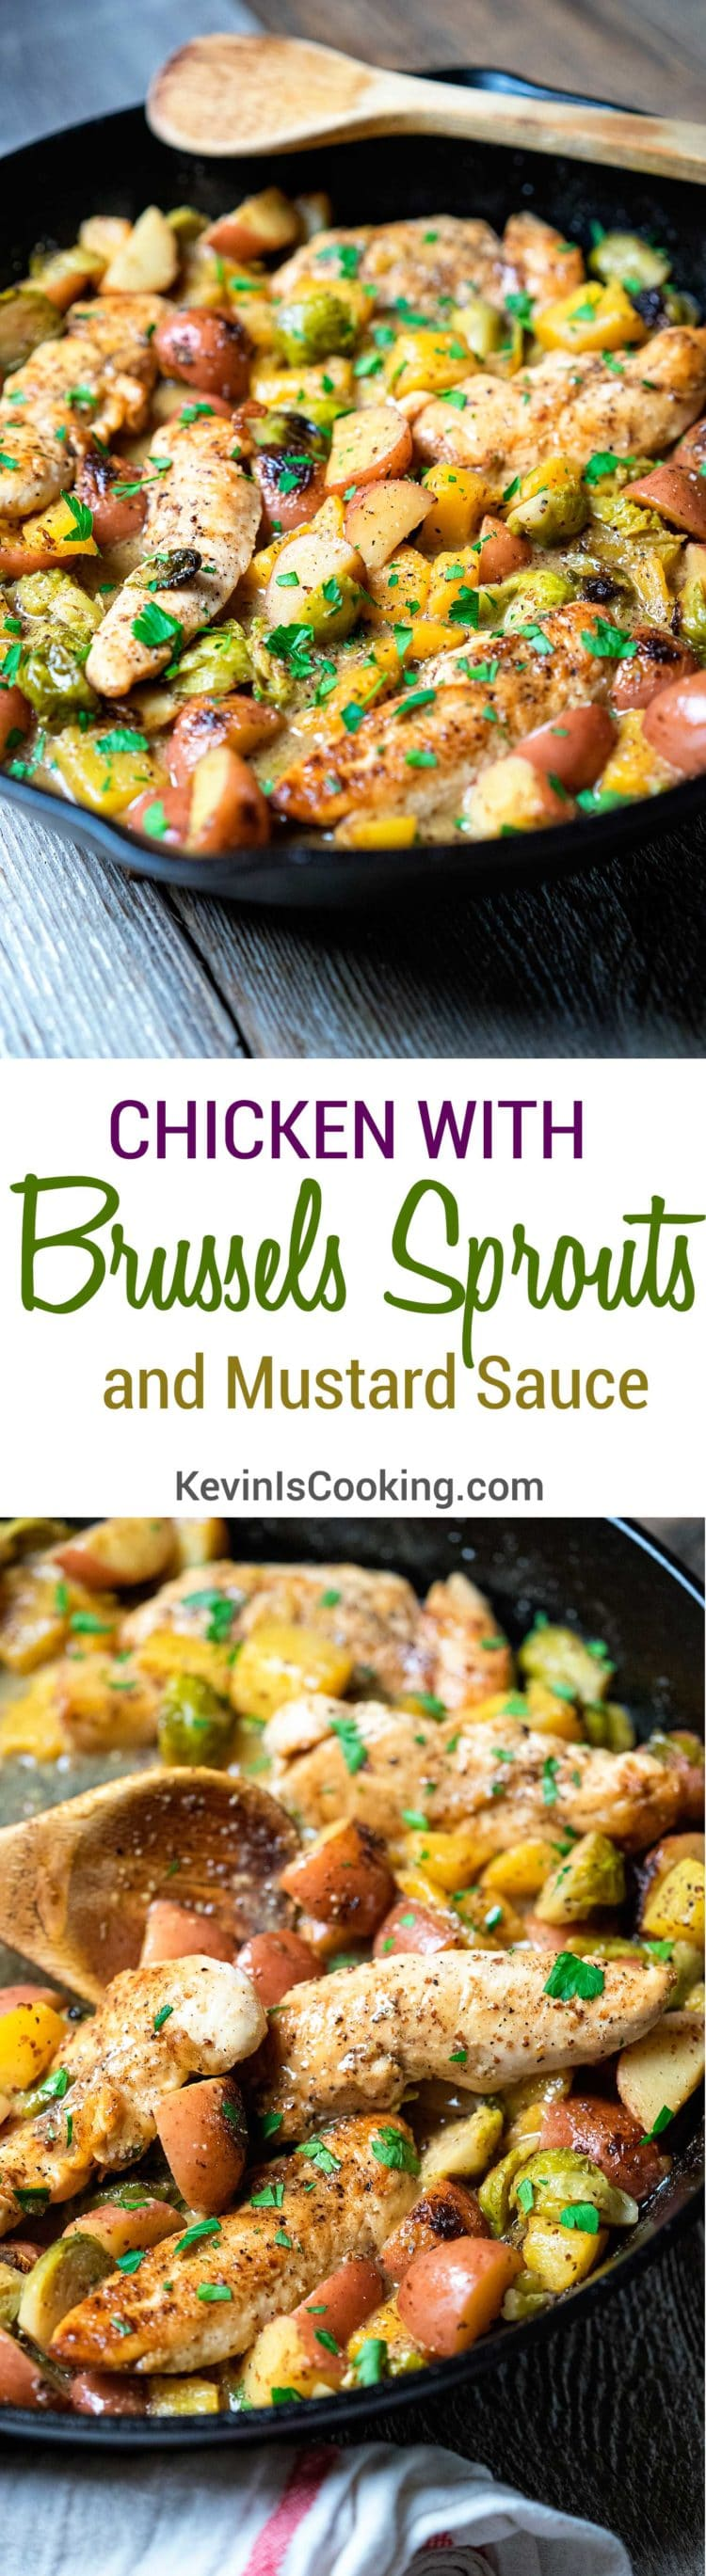 Chicken with Brussels Sprouts and Mustard Sauce - a perfect mid-week dinner that gets a quick pan sear roasted with apple cider, mustard and vegetables.